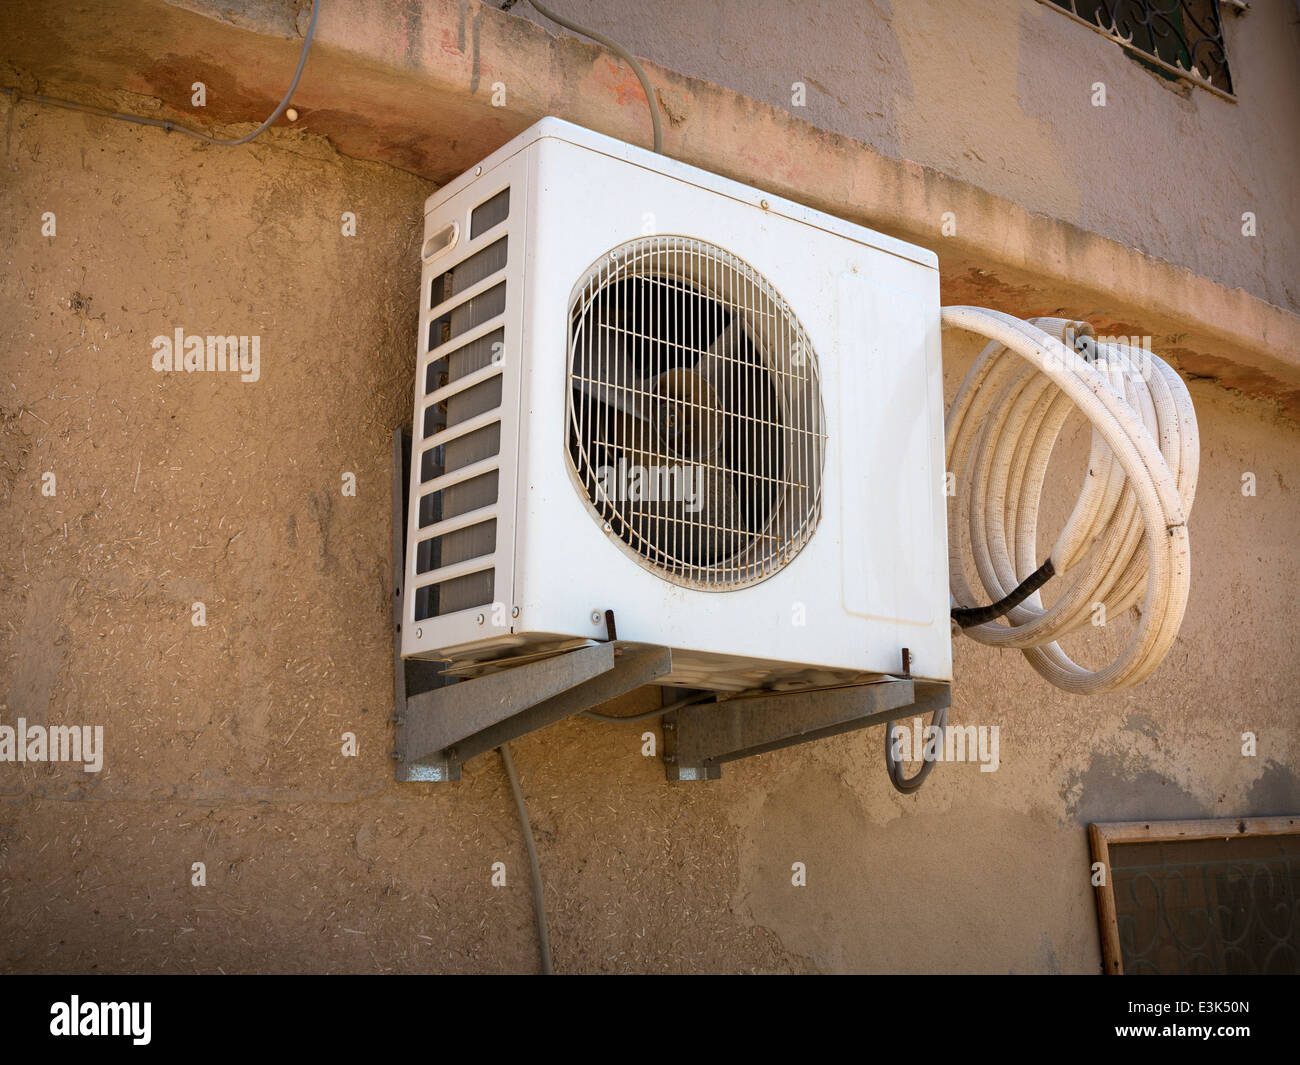 An externally wall mounted air conditioning unit with a coil of plastic hosing mounted on a dusty mud-brick wall - Stock Image